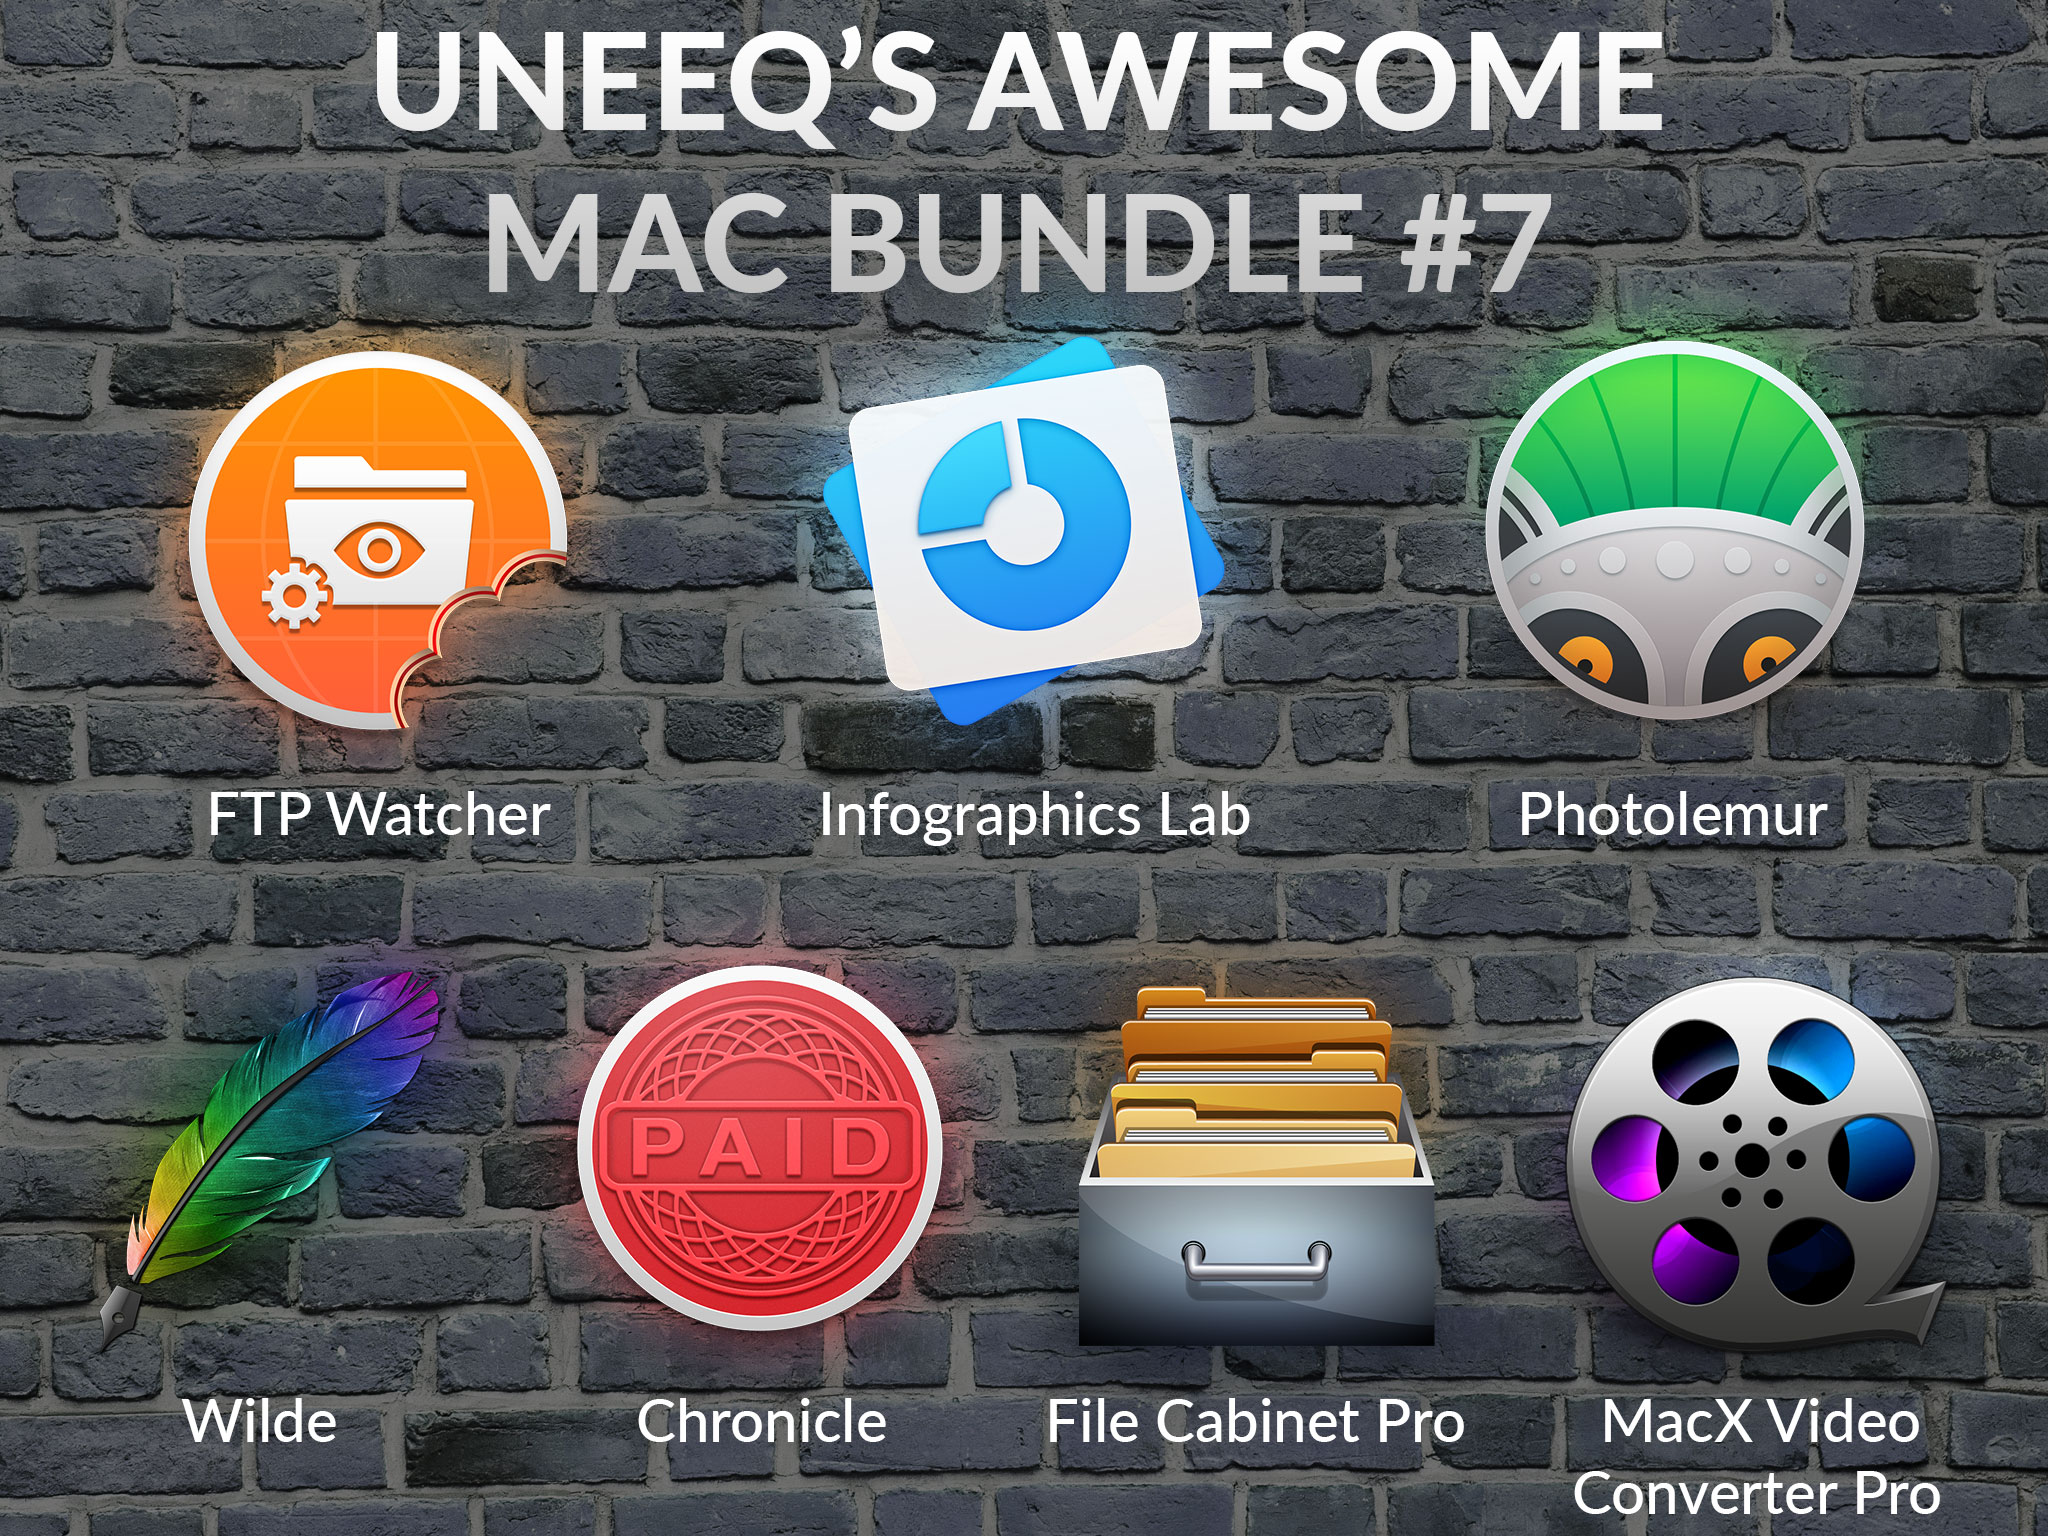 Uneeq Company Launches Awesome Mac Bundle 7